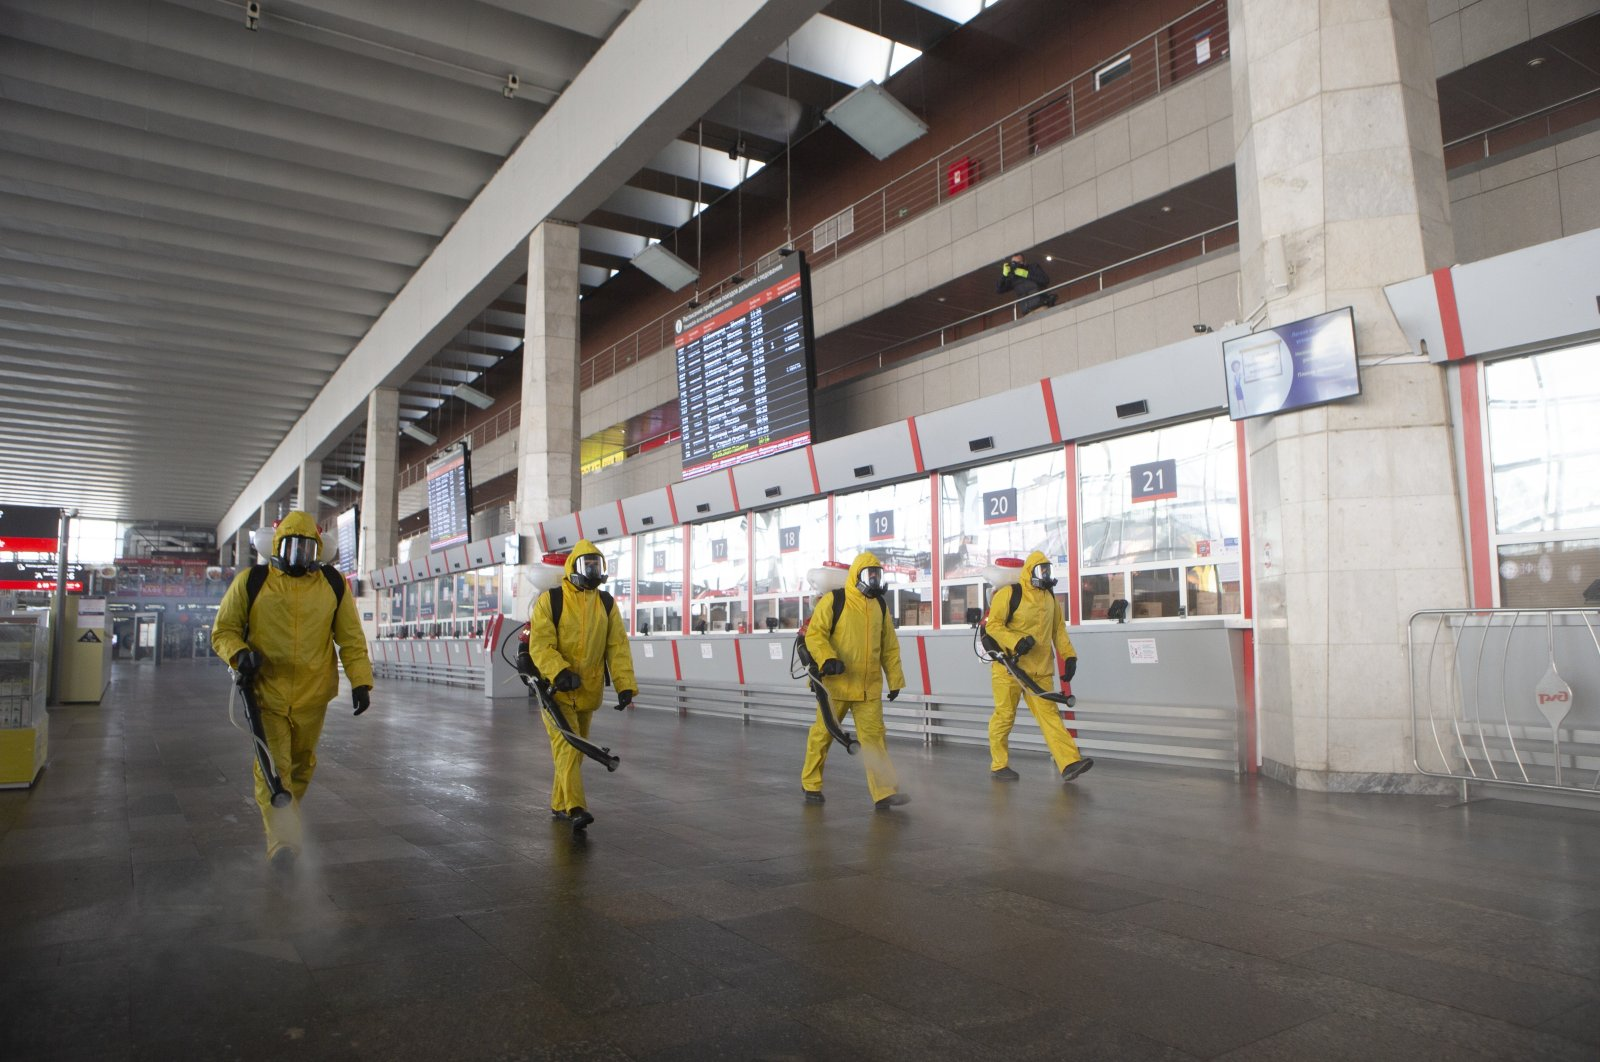 Employees of the Federal State Center for Special Risk Rescue Operations of Russia Emergency Situations disinfect a hall at the Kurskiy railway station in Moscow, Russia, Friday, May 15, 2020. (AP Photo)